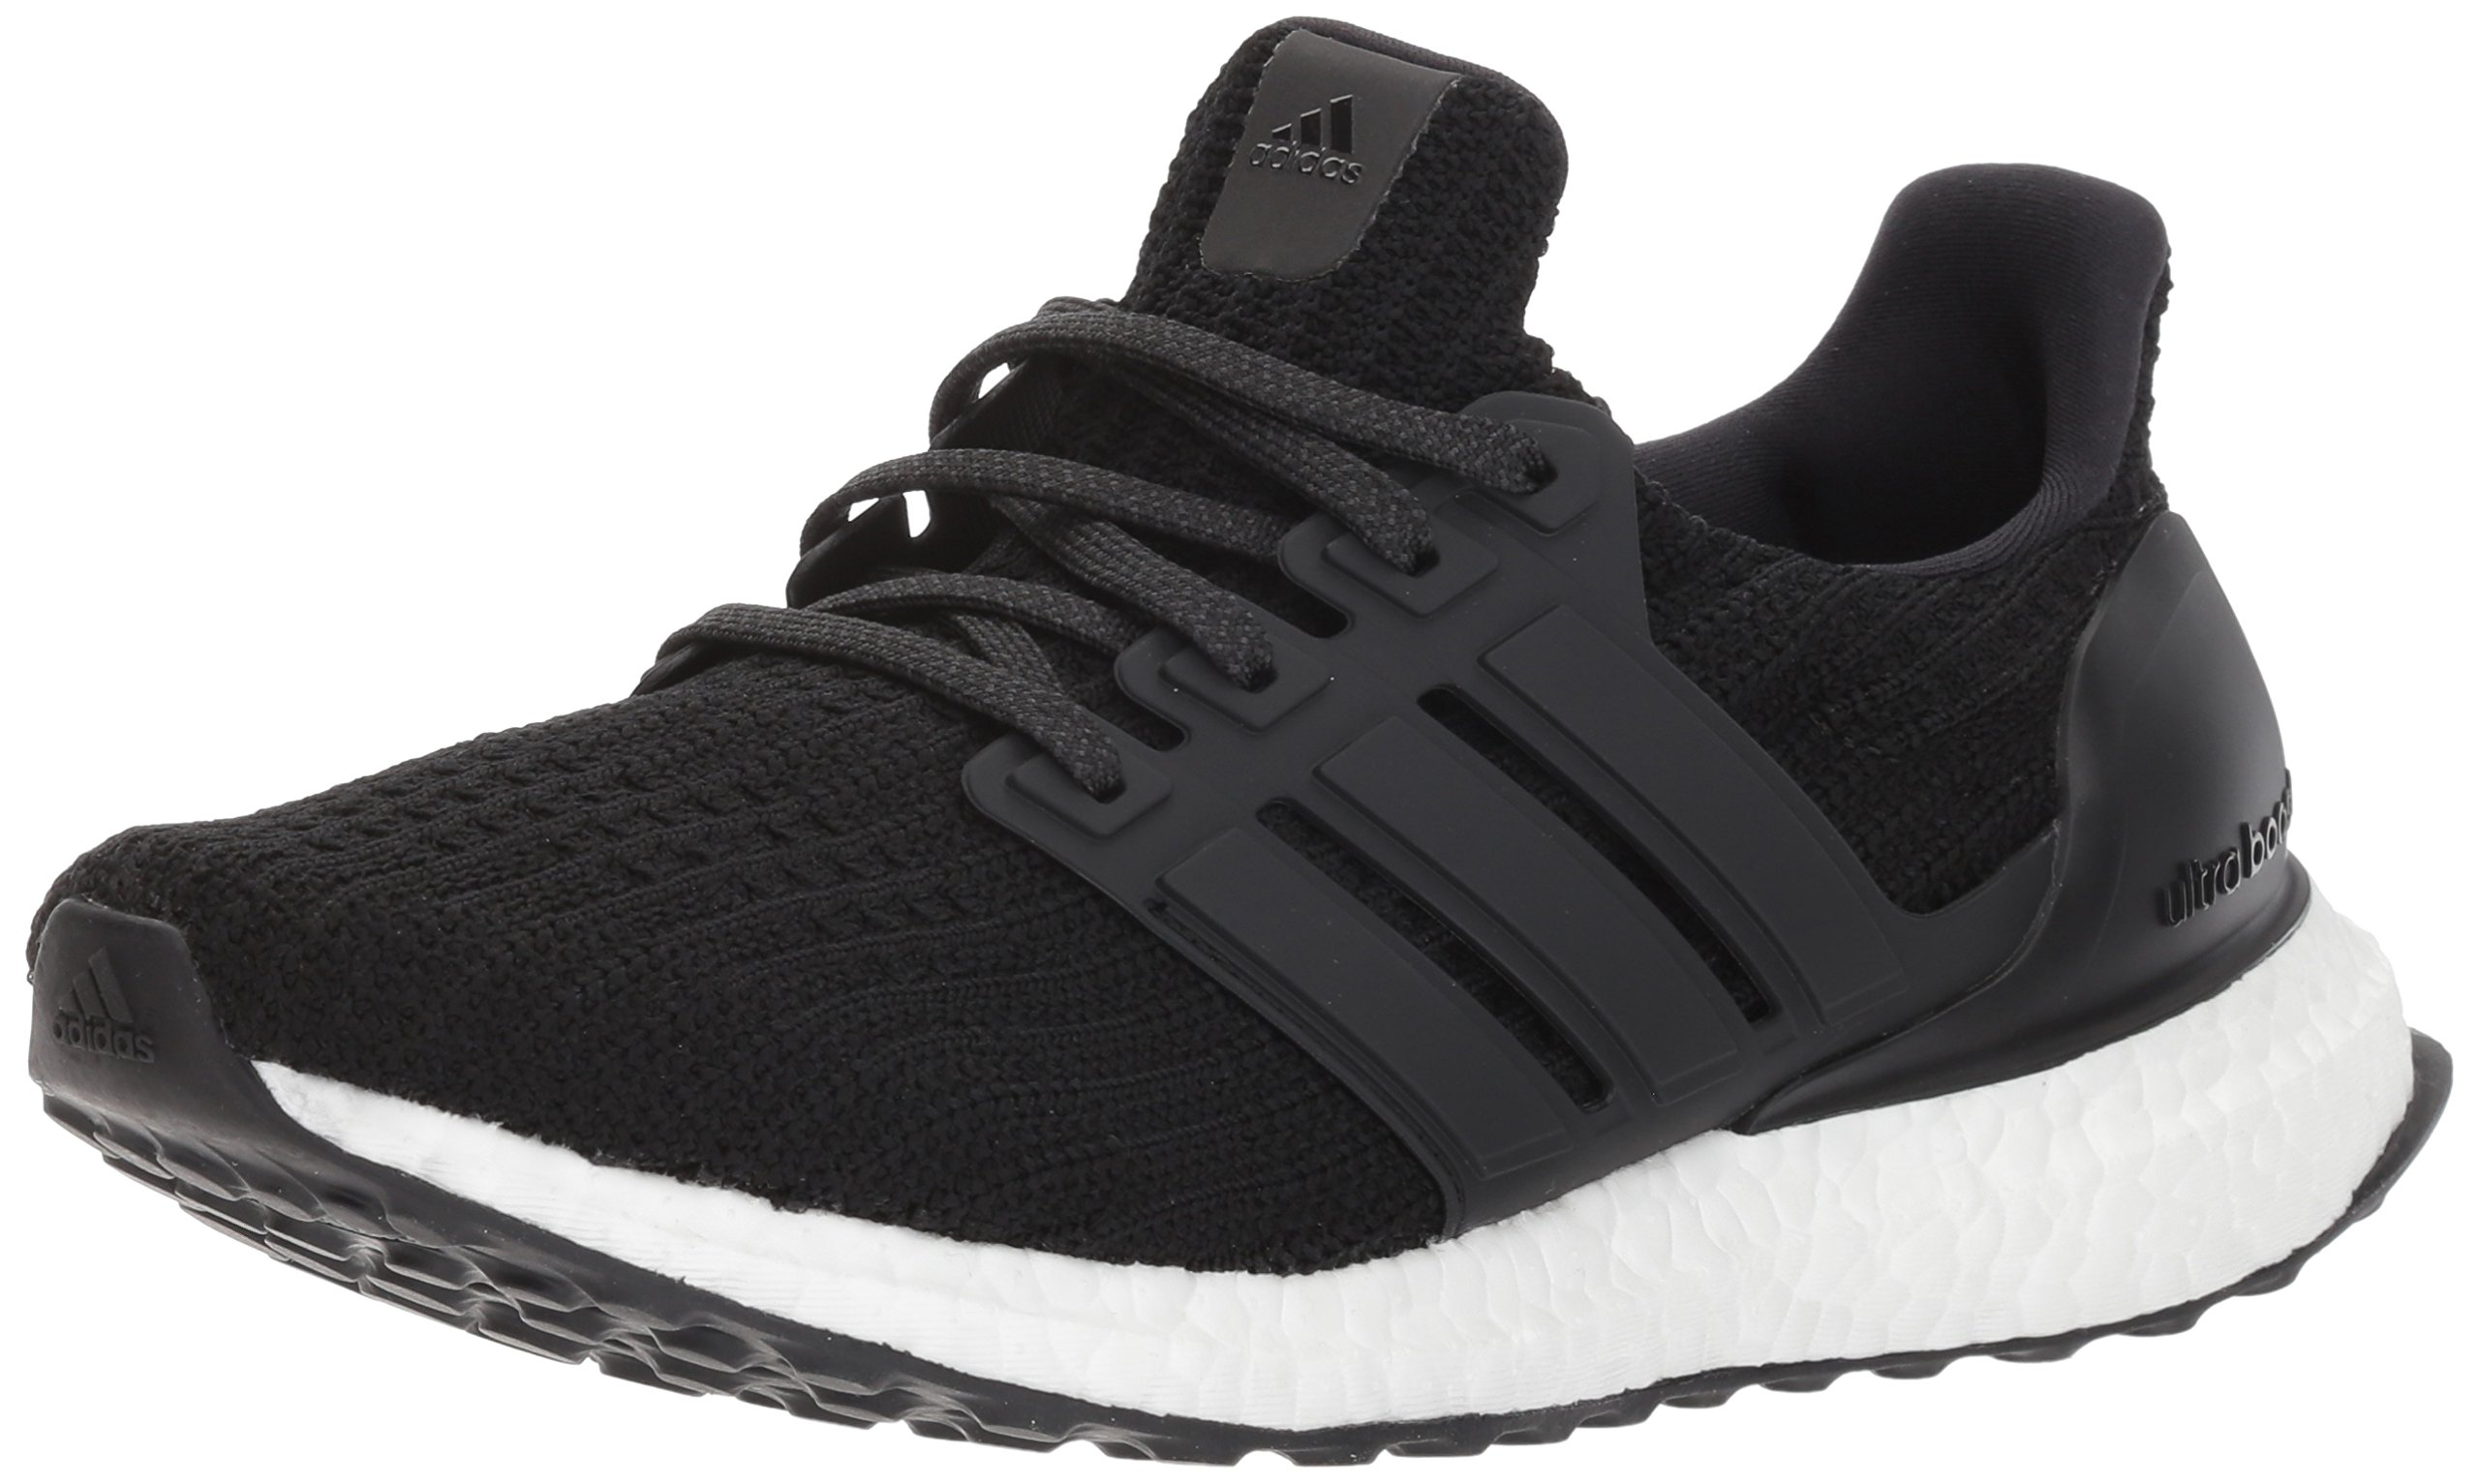 adidas Women's Ultraboost w Road Running Shoe, Core Black/Core Black/Core Black, 8 M US